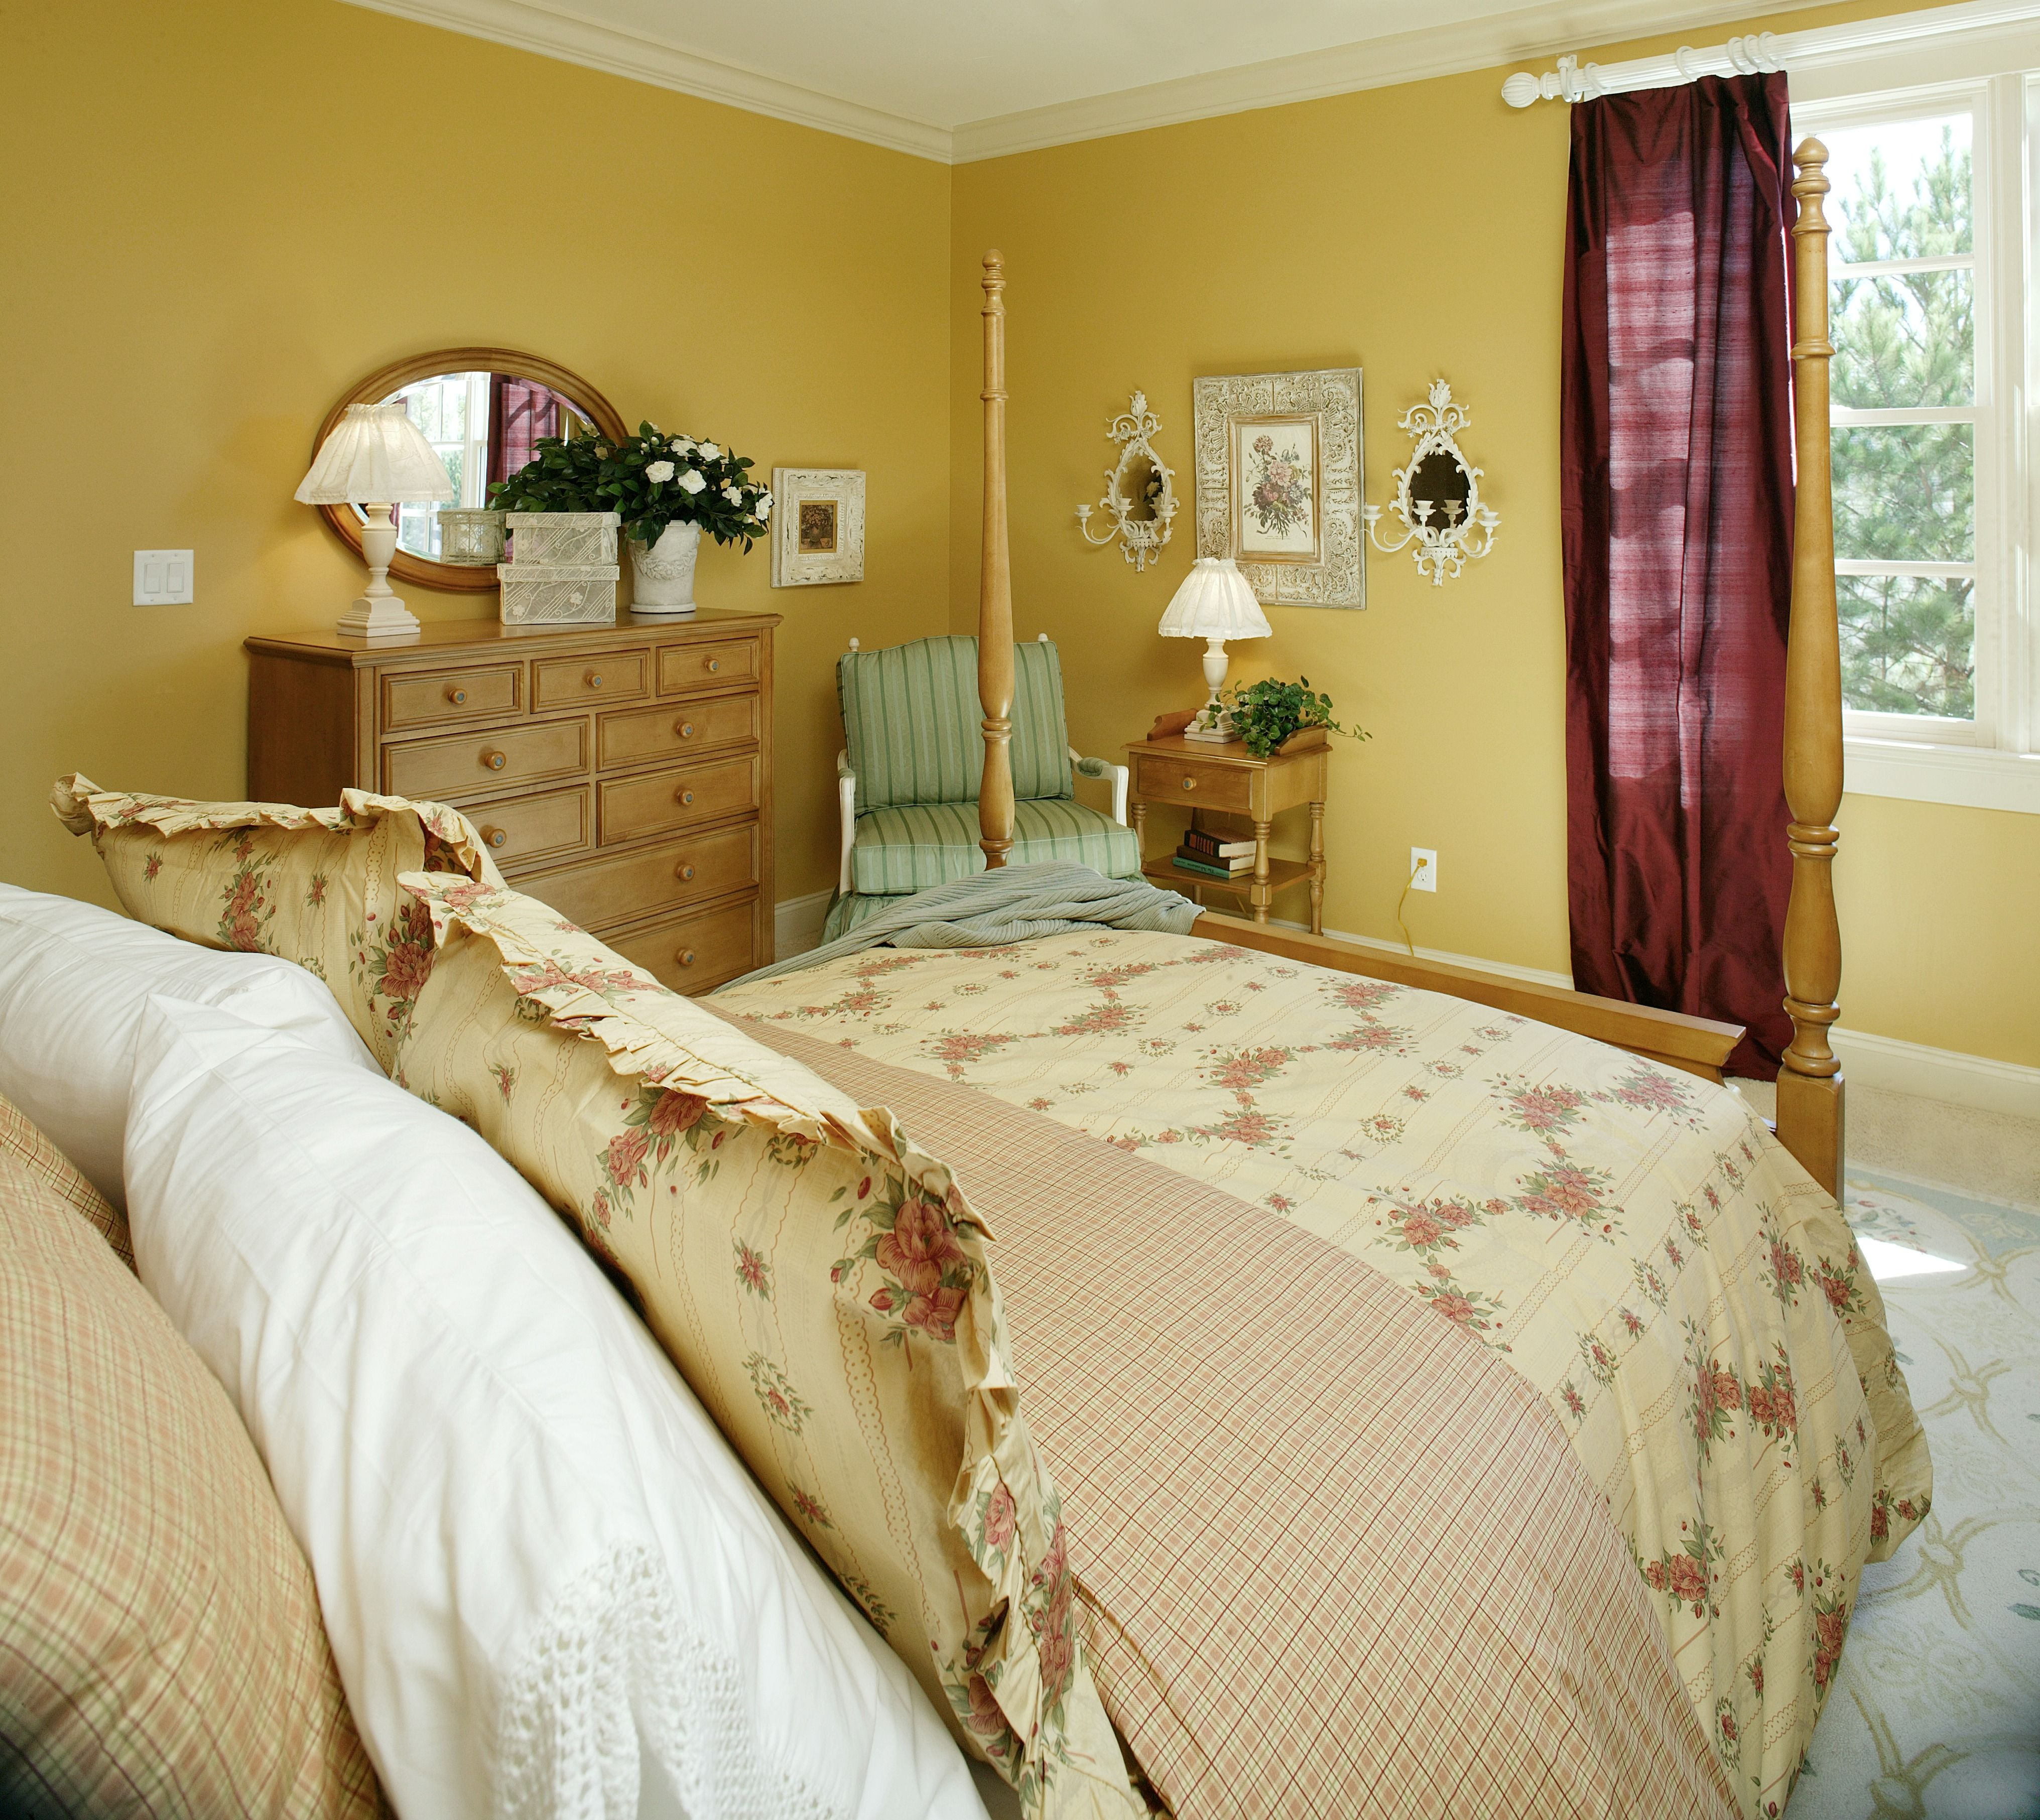 Wow, This Bedroom Is Awfully Bright Due To The Bold Yellow Paint! Itu0027s Cozy